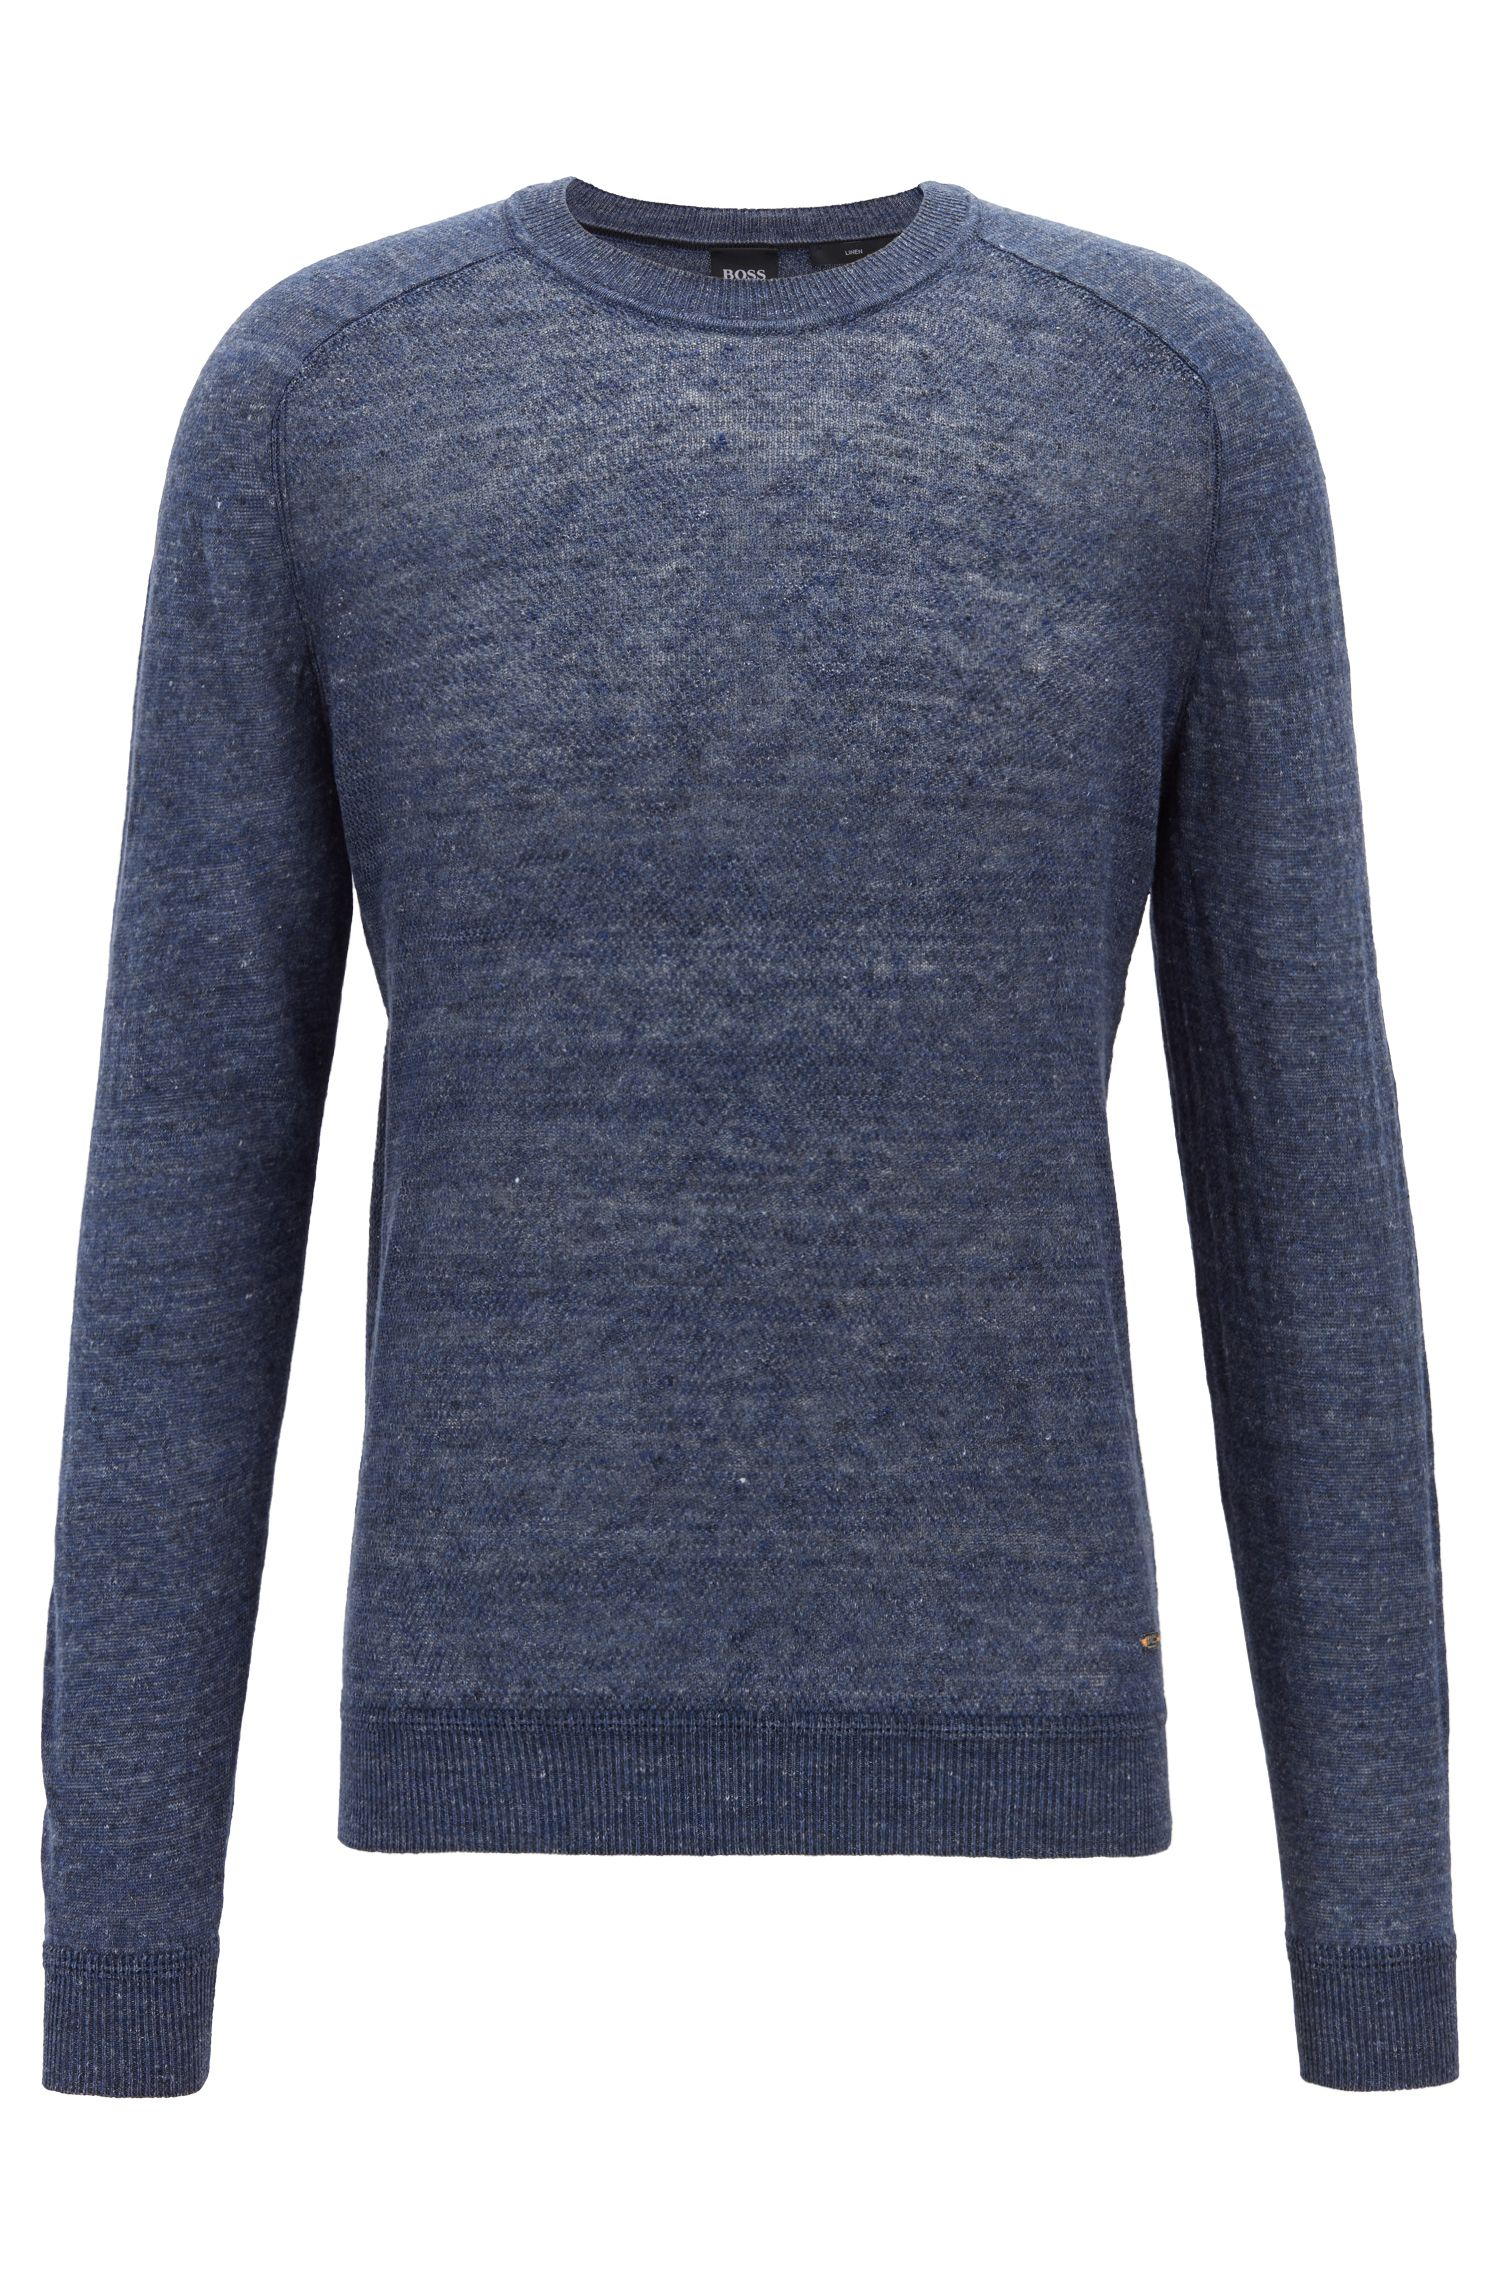 Micro-structured sweater in melange linen with ottoman detailing, Dark Blue